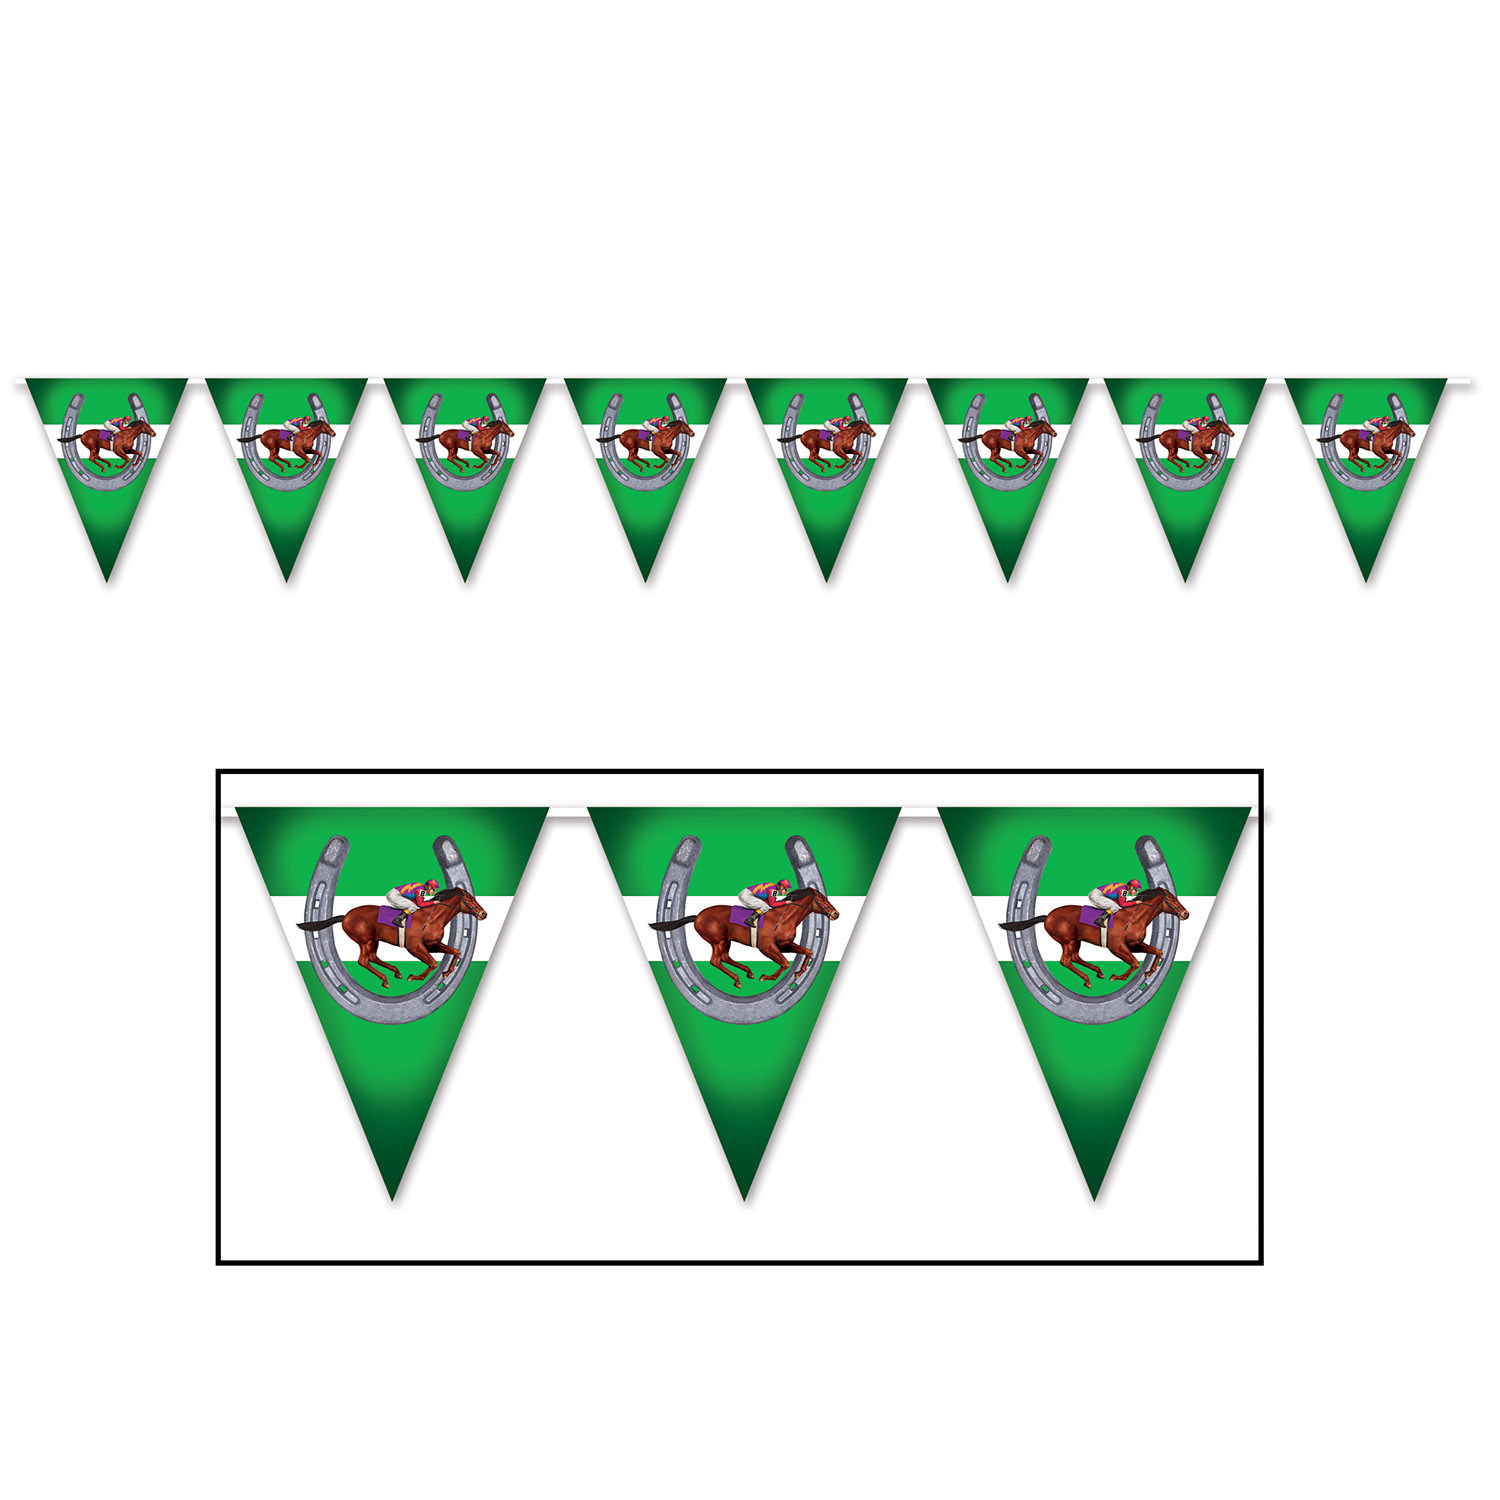 Horse Racing Pennant Banner (Pack of 12) Horse Racing Pennant Banner, derby day, new years eve, horse racing, decoration, wholesale, inexpensive, bulk